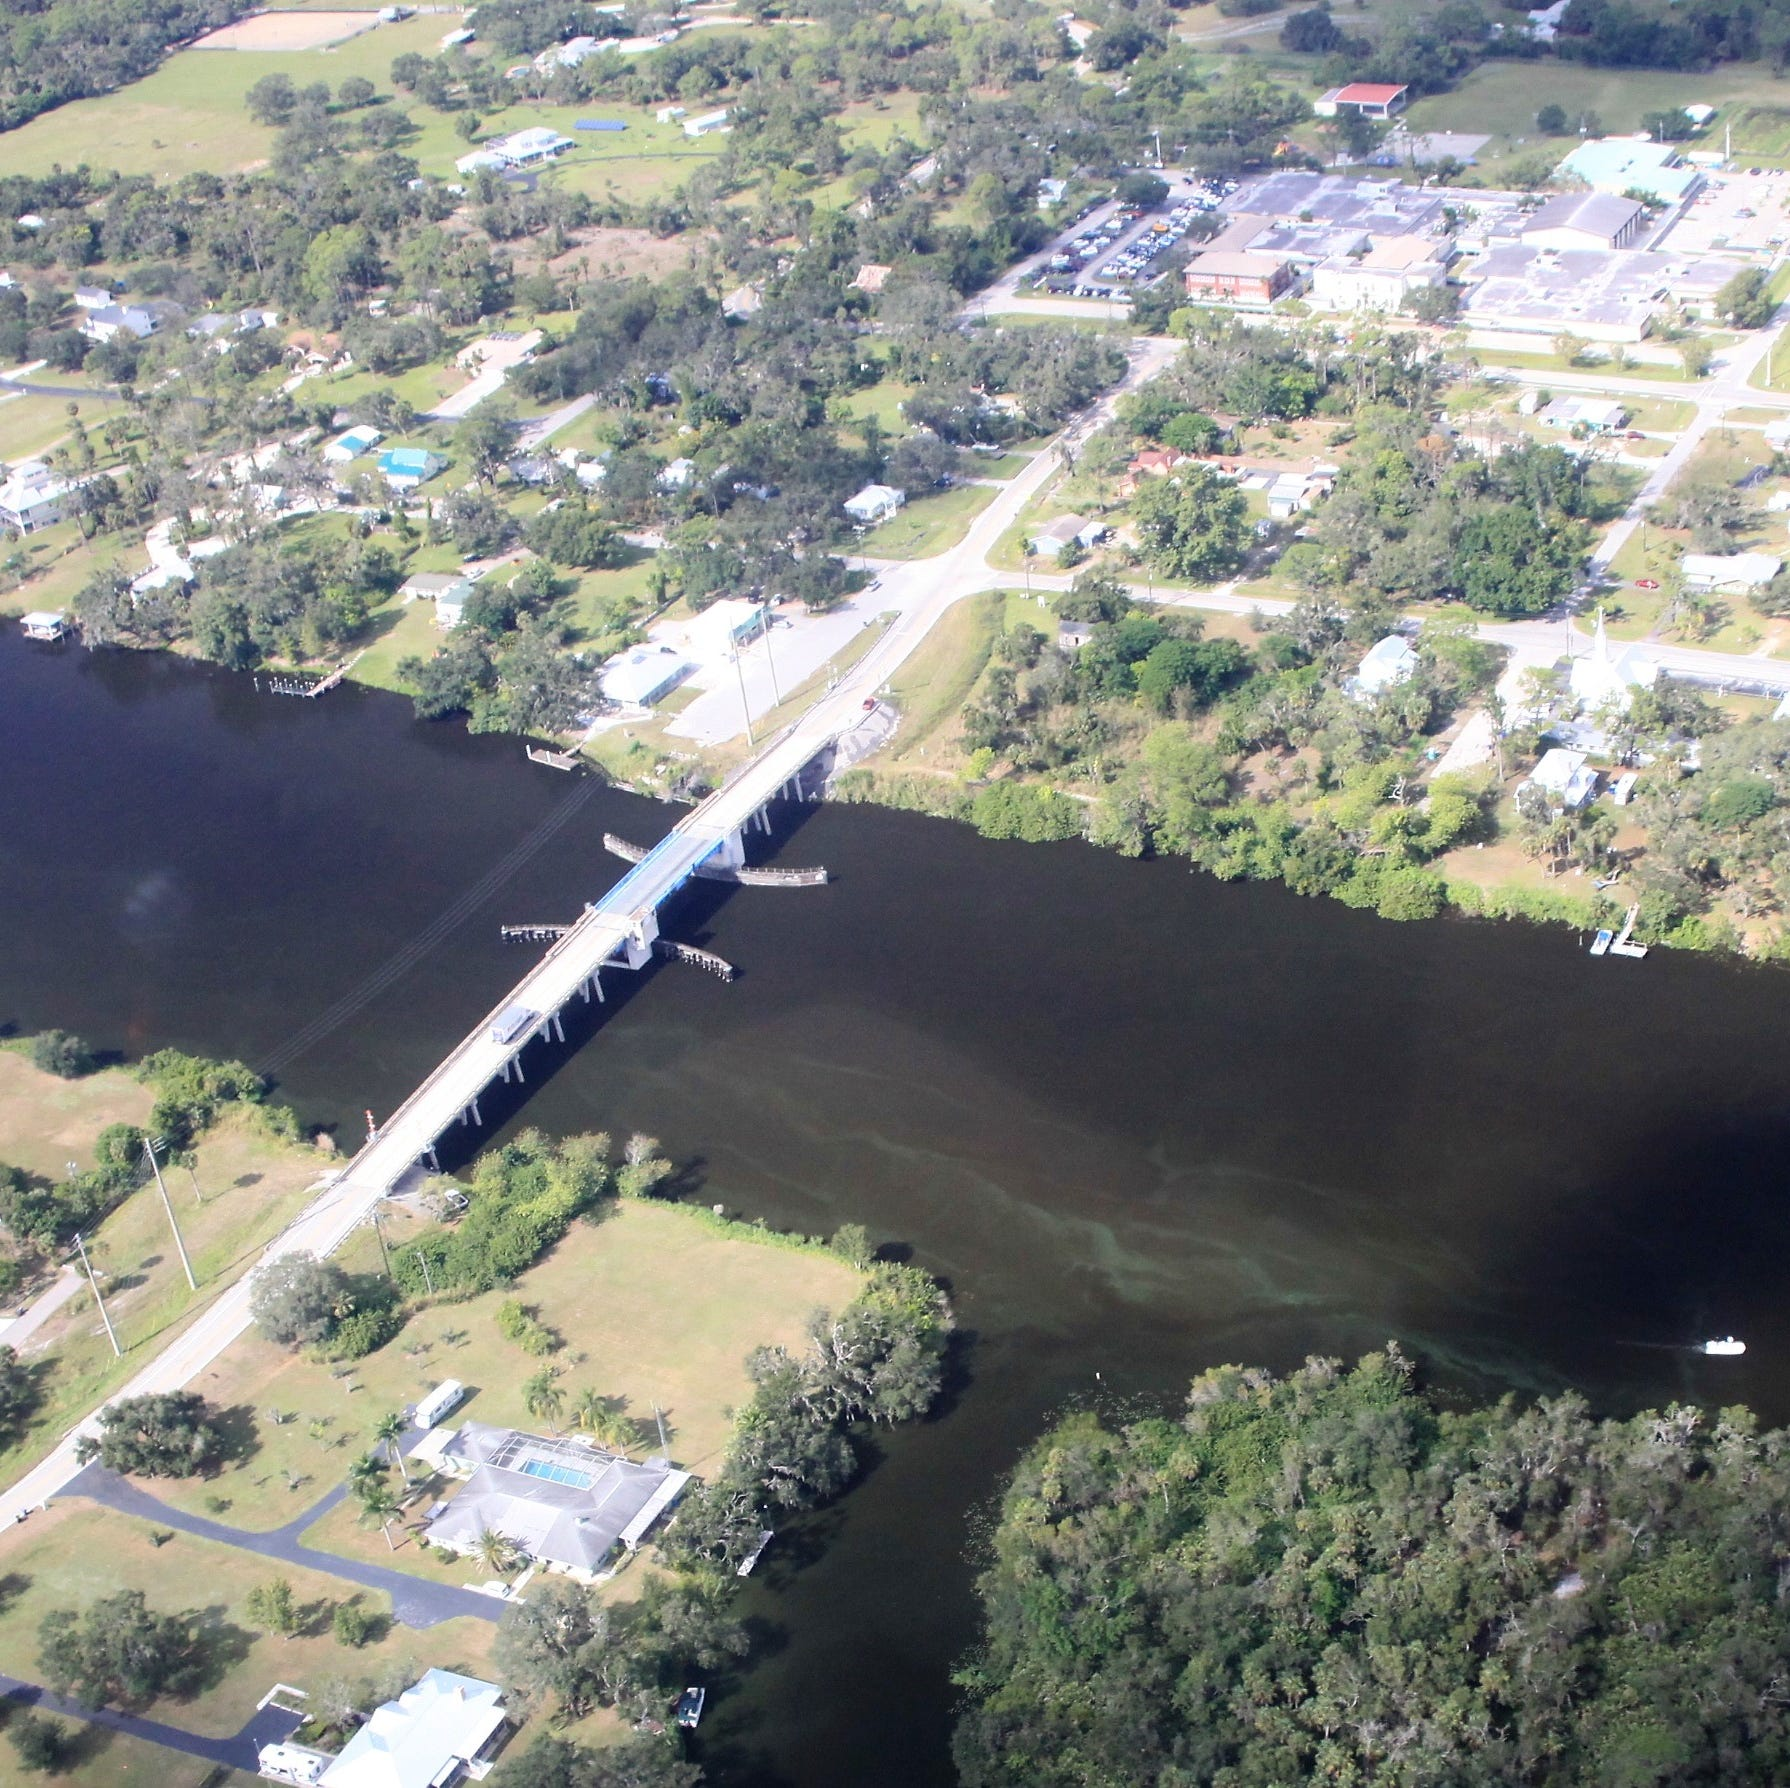 Algae once again streaks Caloosahatchee's upper reaches, new aerial photos show